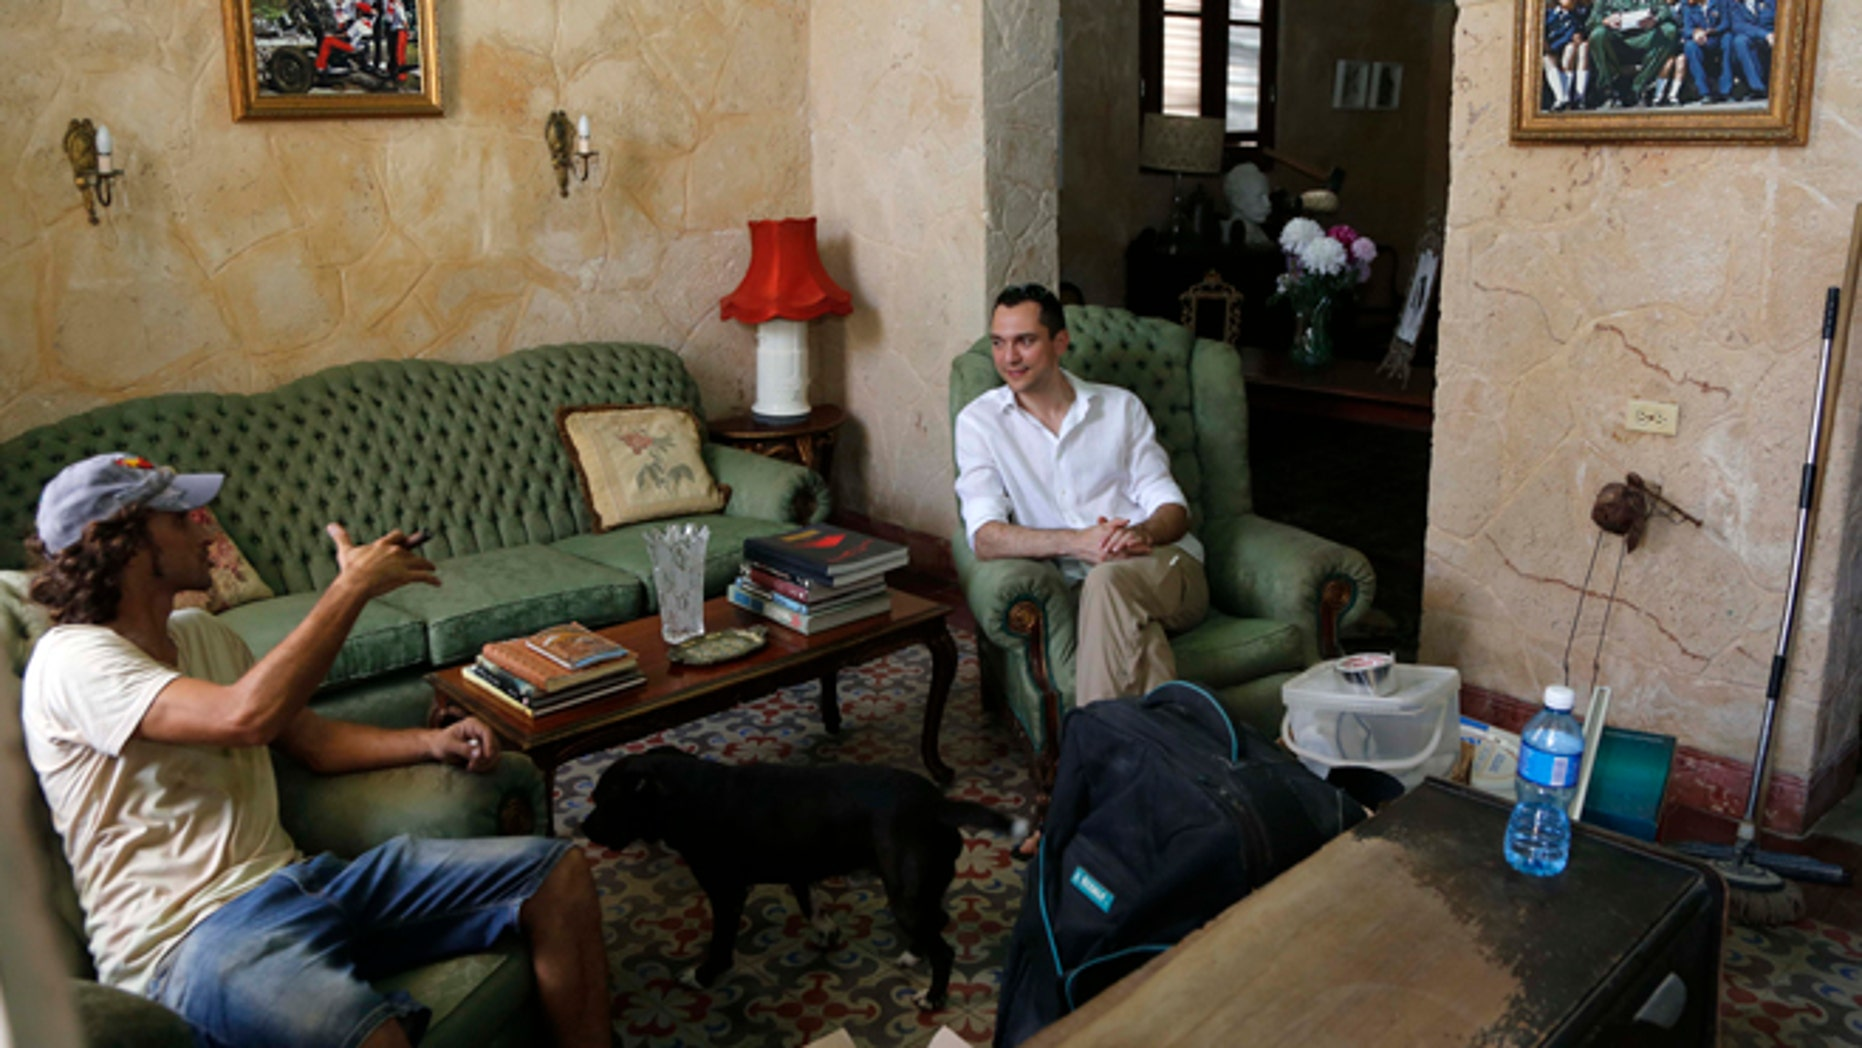 Co-founder of AirBnb Nathan Blecharczyk, right, visits with guesthouse owner Armando Usain in Havana, Cuba, Wednesday, June 24, 2015. AirBnb has added more than 2,000 listings in Cuba, which has long had an extensive network of legal private home for rent to travelers. (AP Photo/Desmond Boylan)